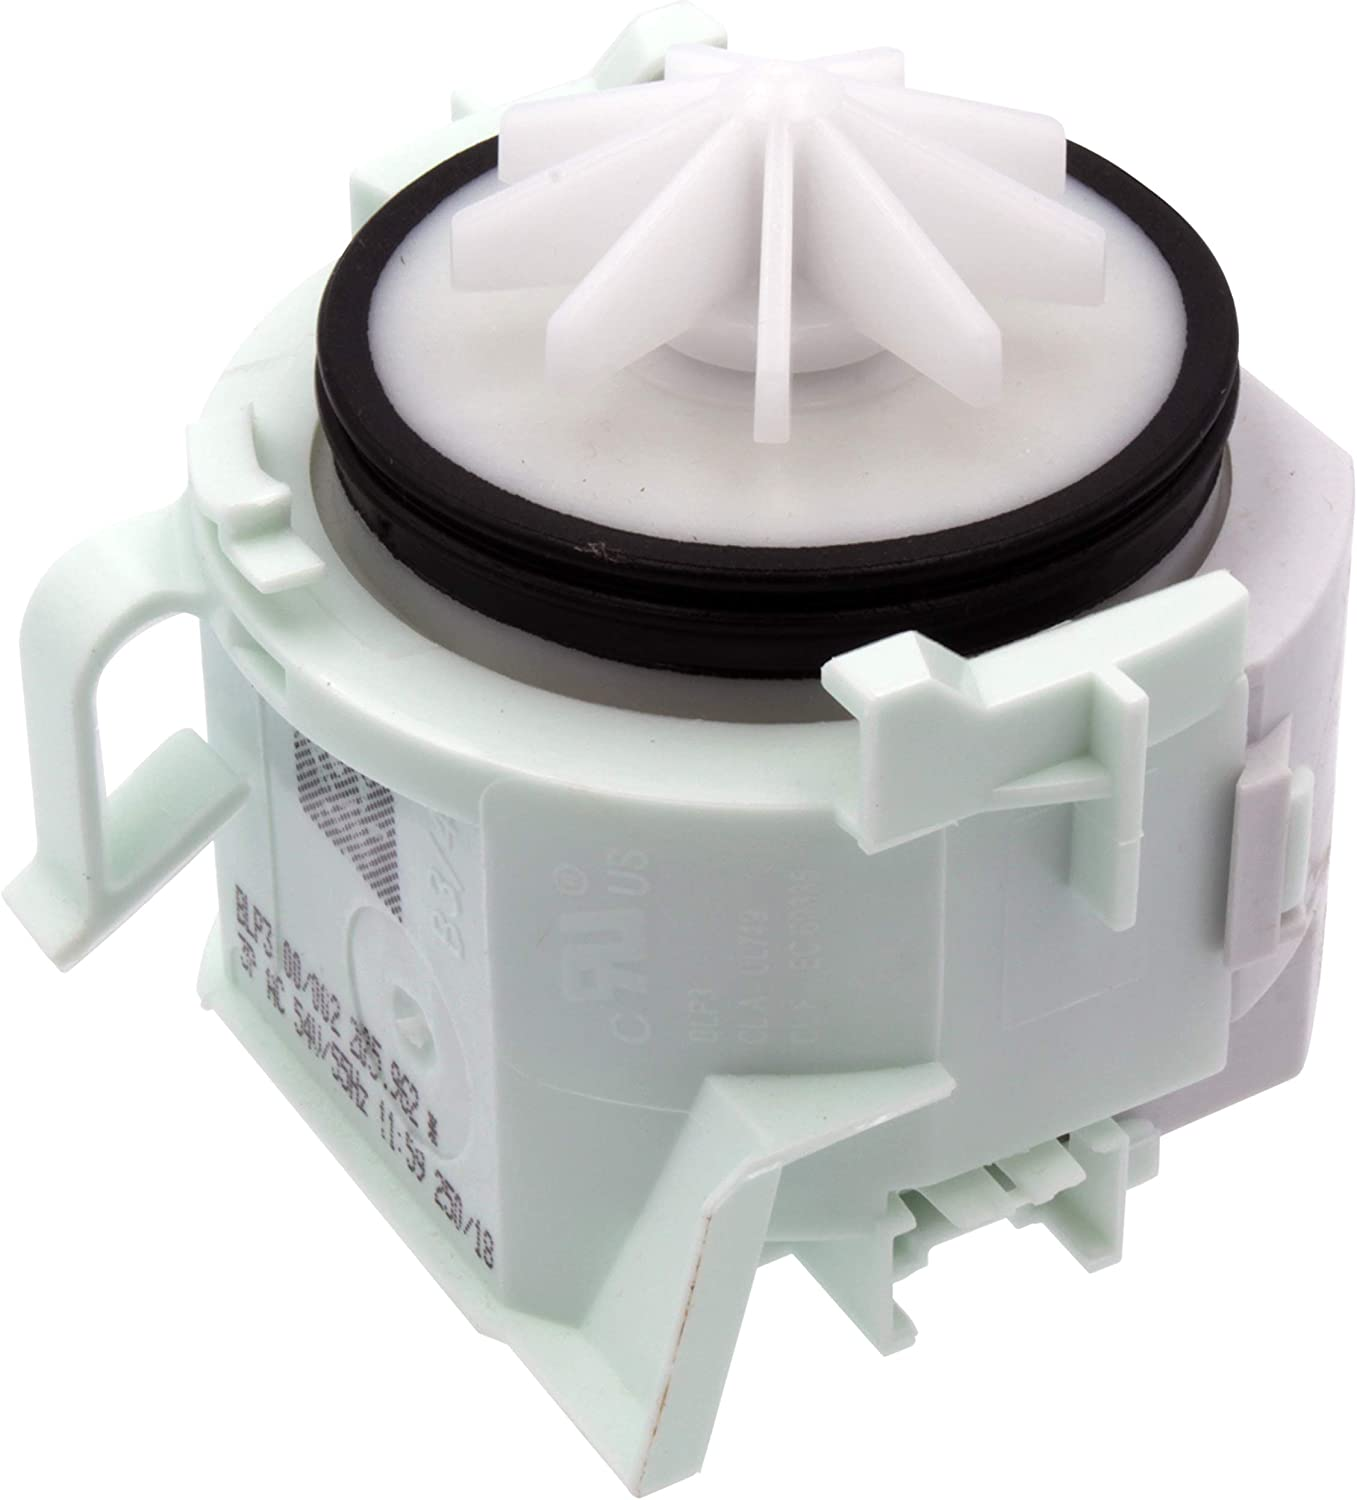 Supplying Demand 00611332 Dishwasher Drain Pump Compatible With Bosch Fits 1557816, 611332